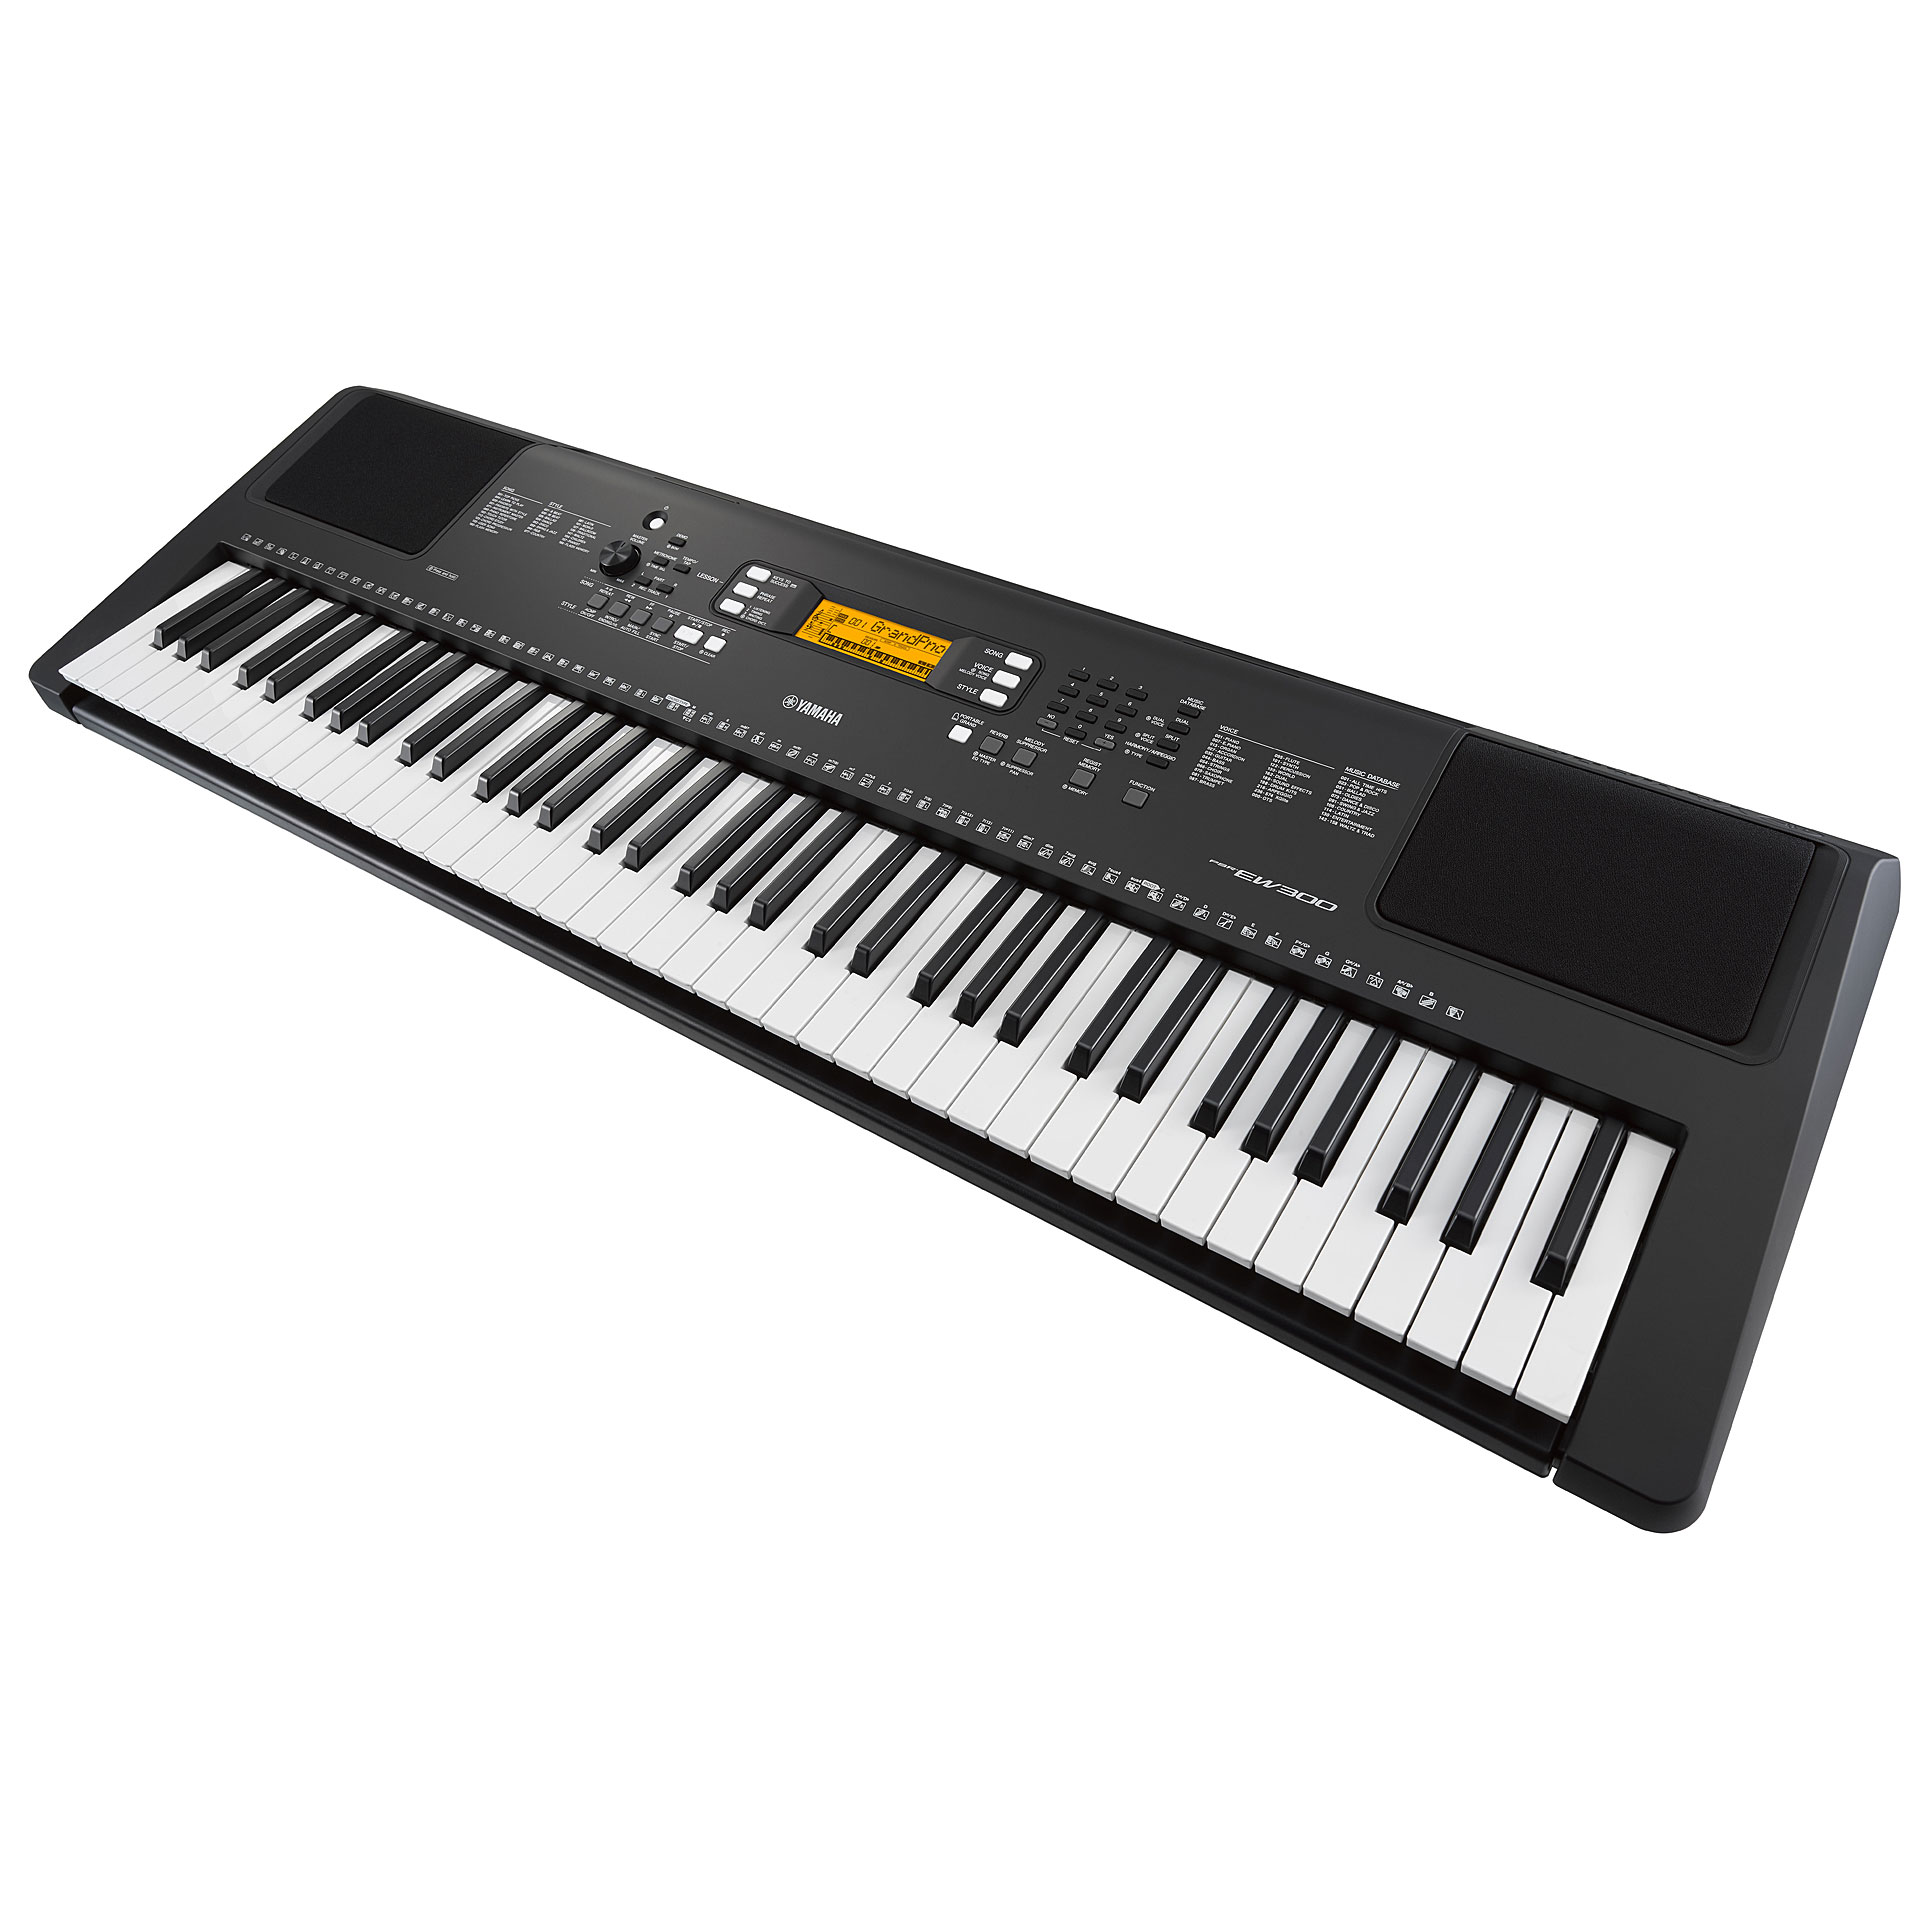 Yamaha psr ew300 keyboard for Www yamaha keyboards